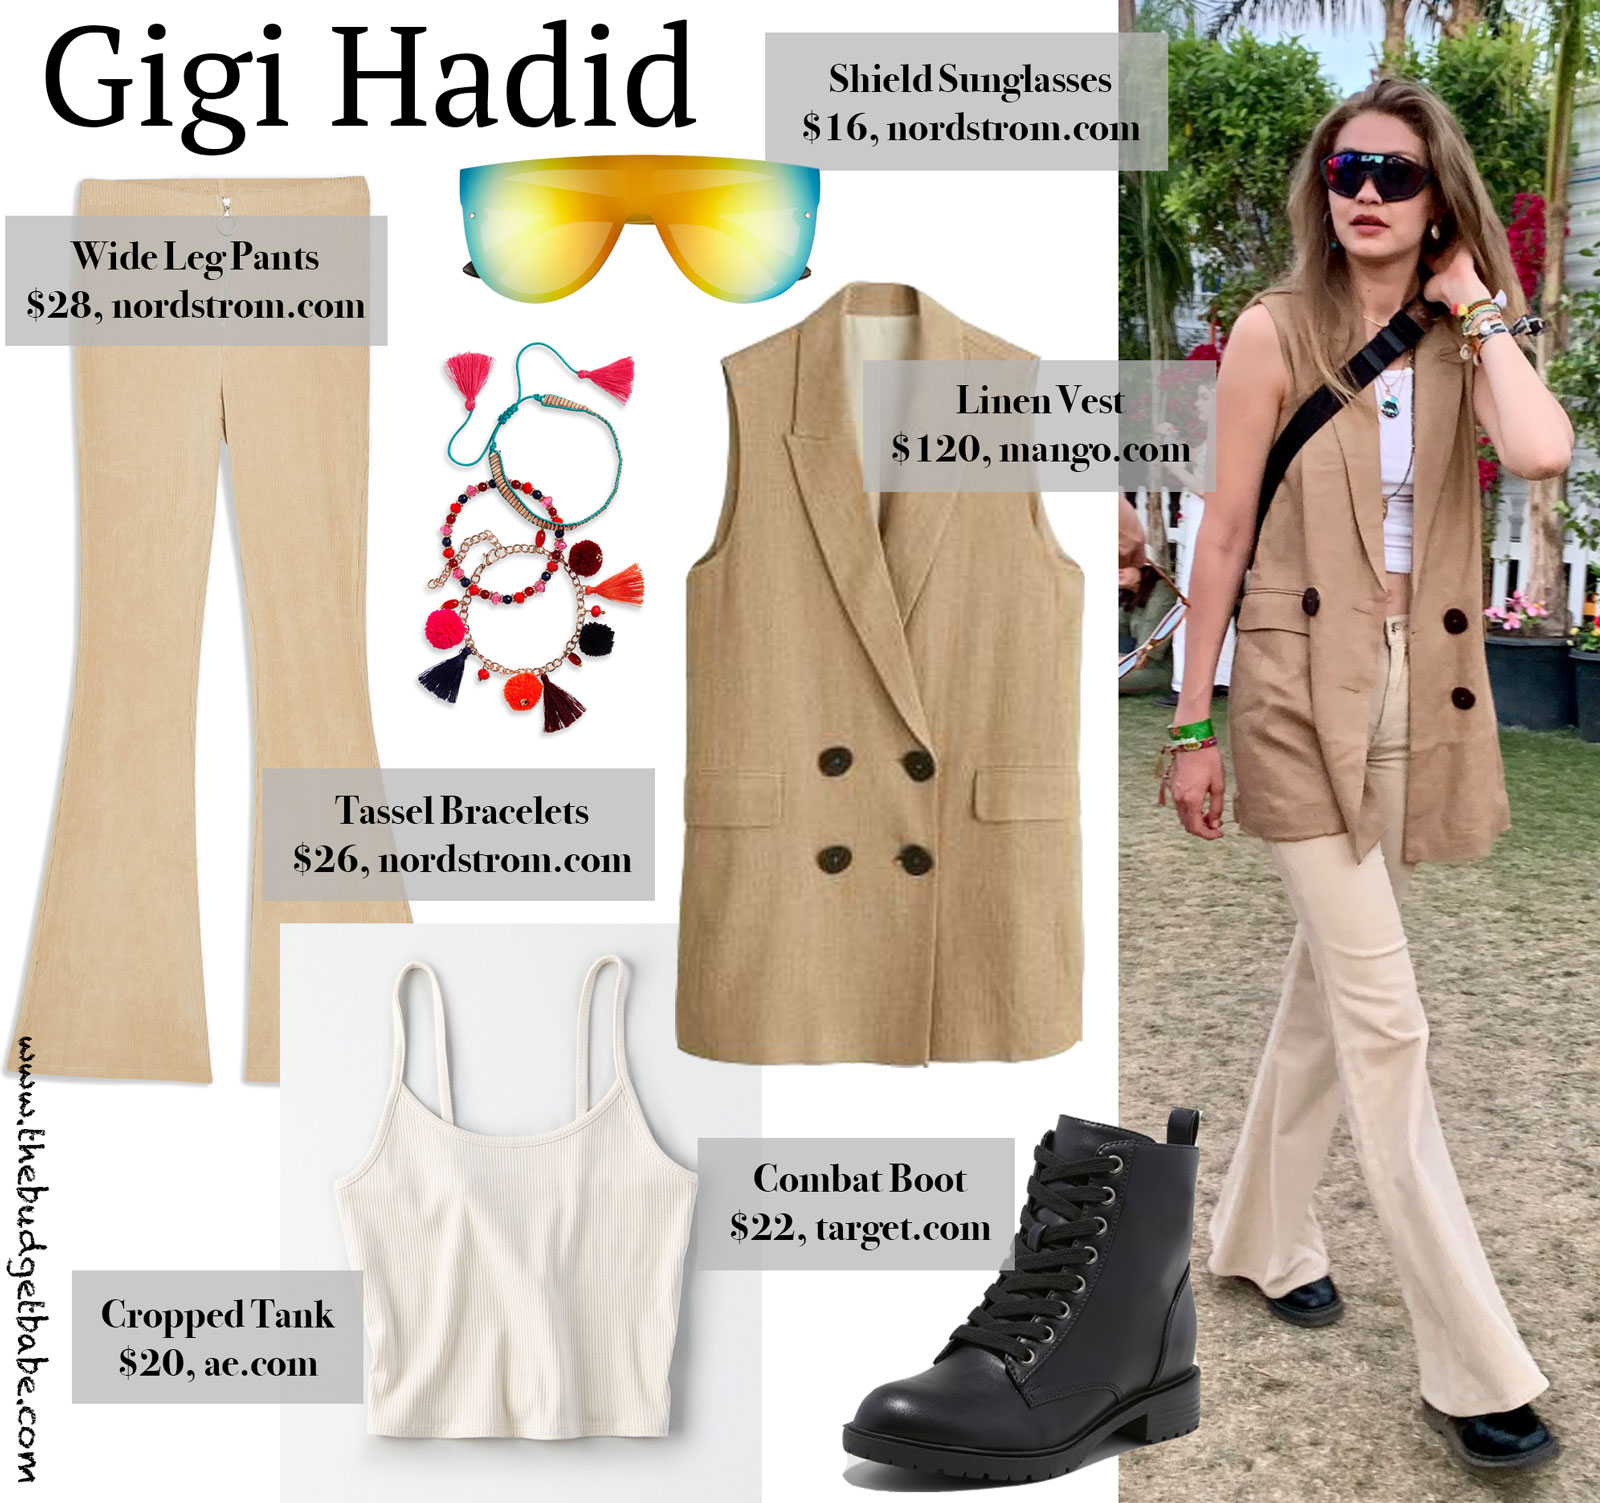 006960c7f47 Gigi Hadid Tan Vest and Wide Leg Pants Look for Less